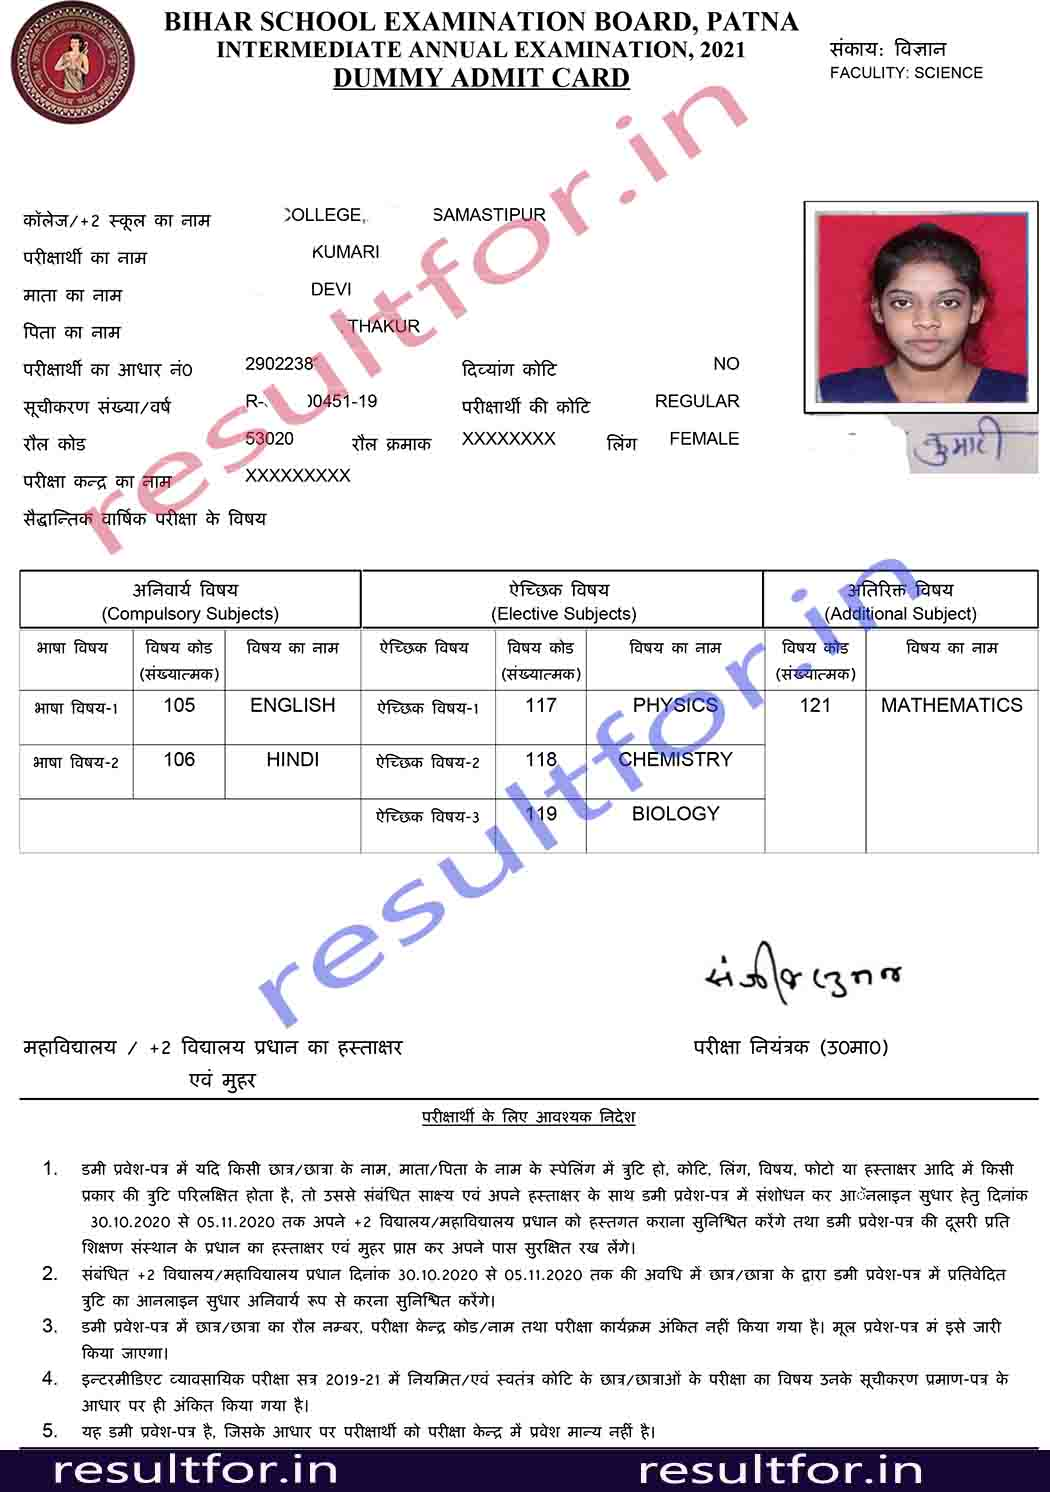 bihar board inter class 12th Dummy Admit Card 2021